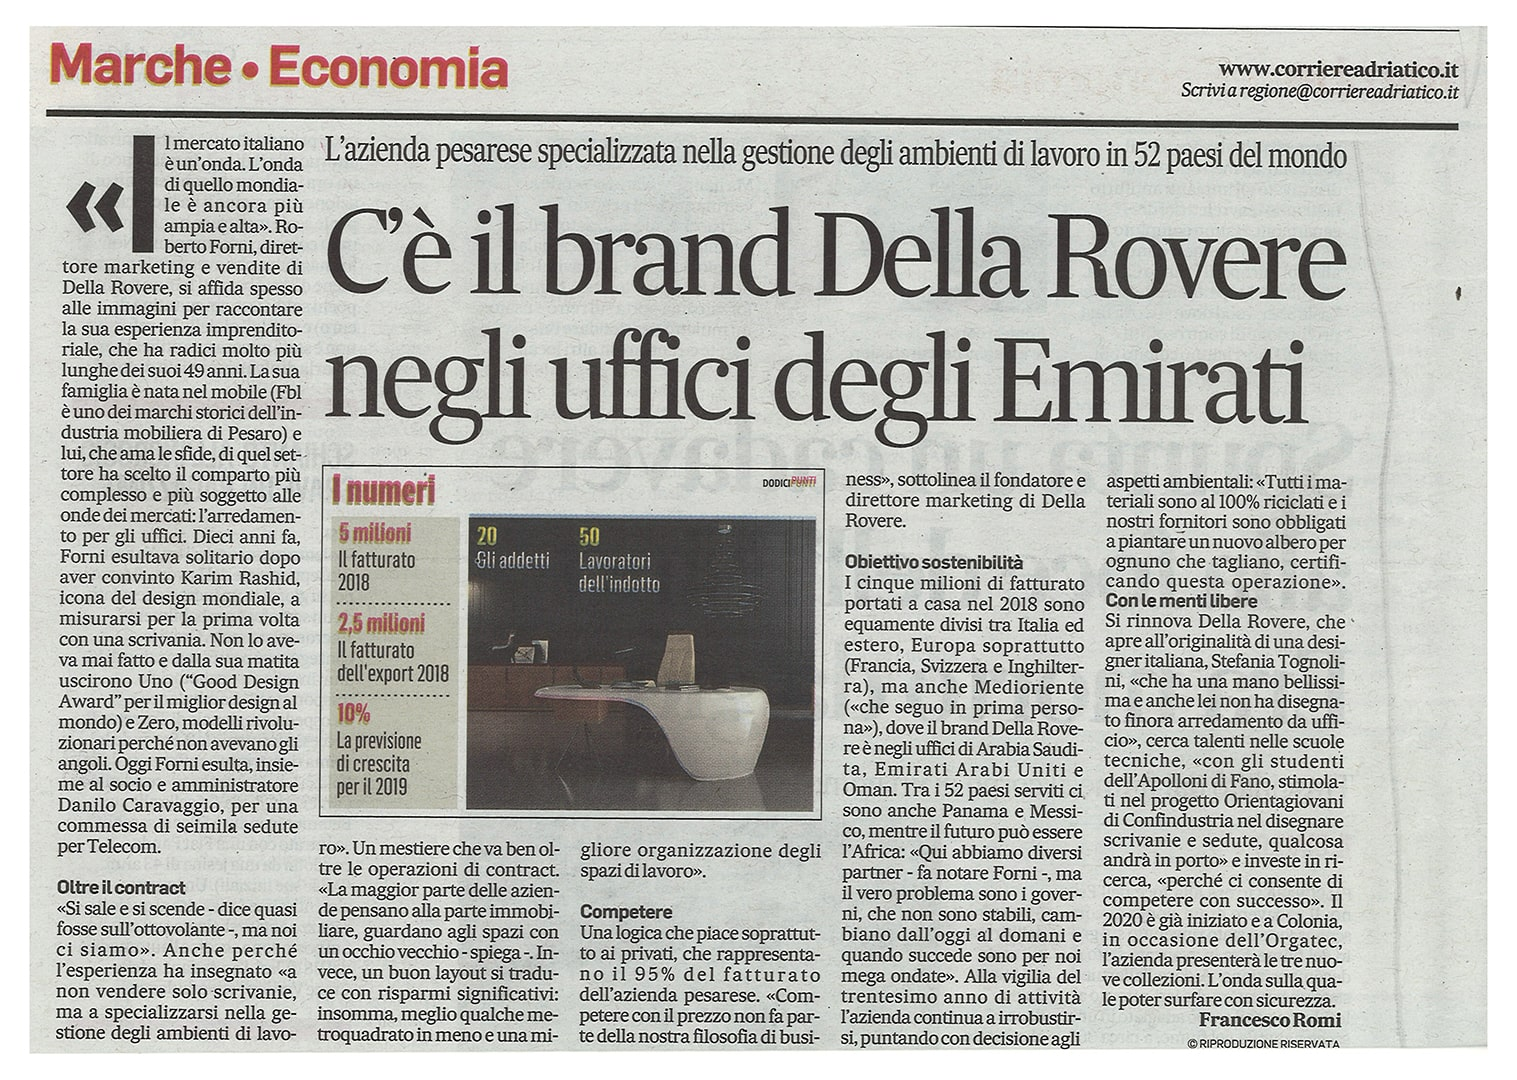 Della Rovere makes the news